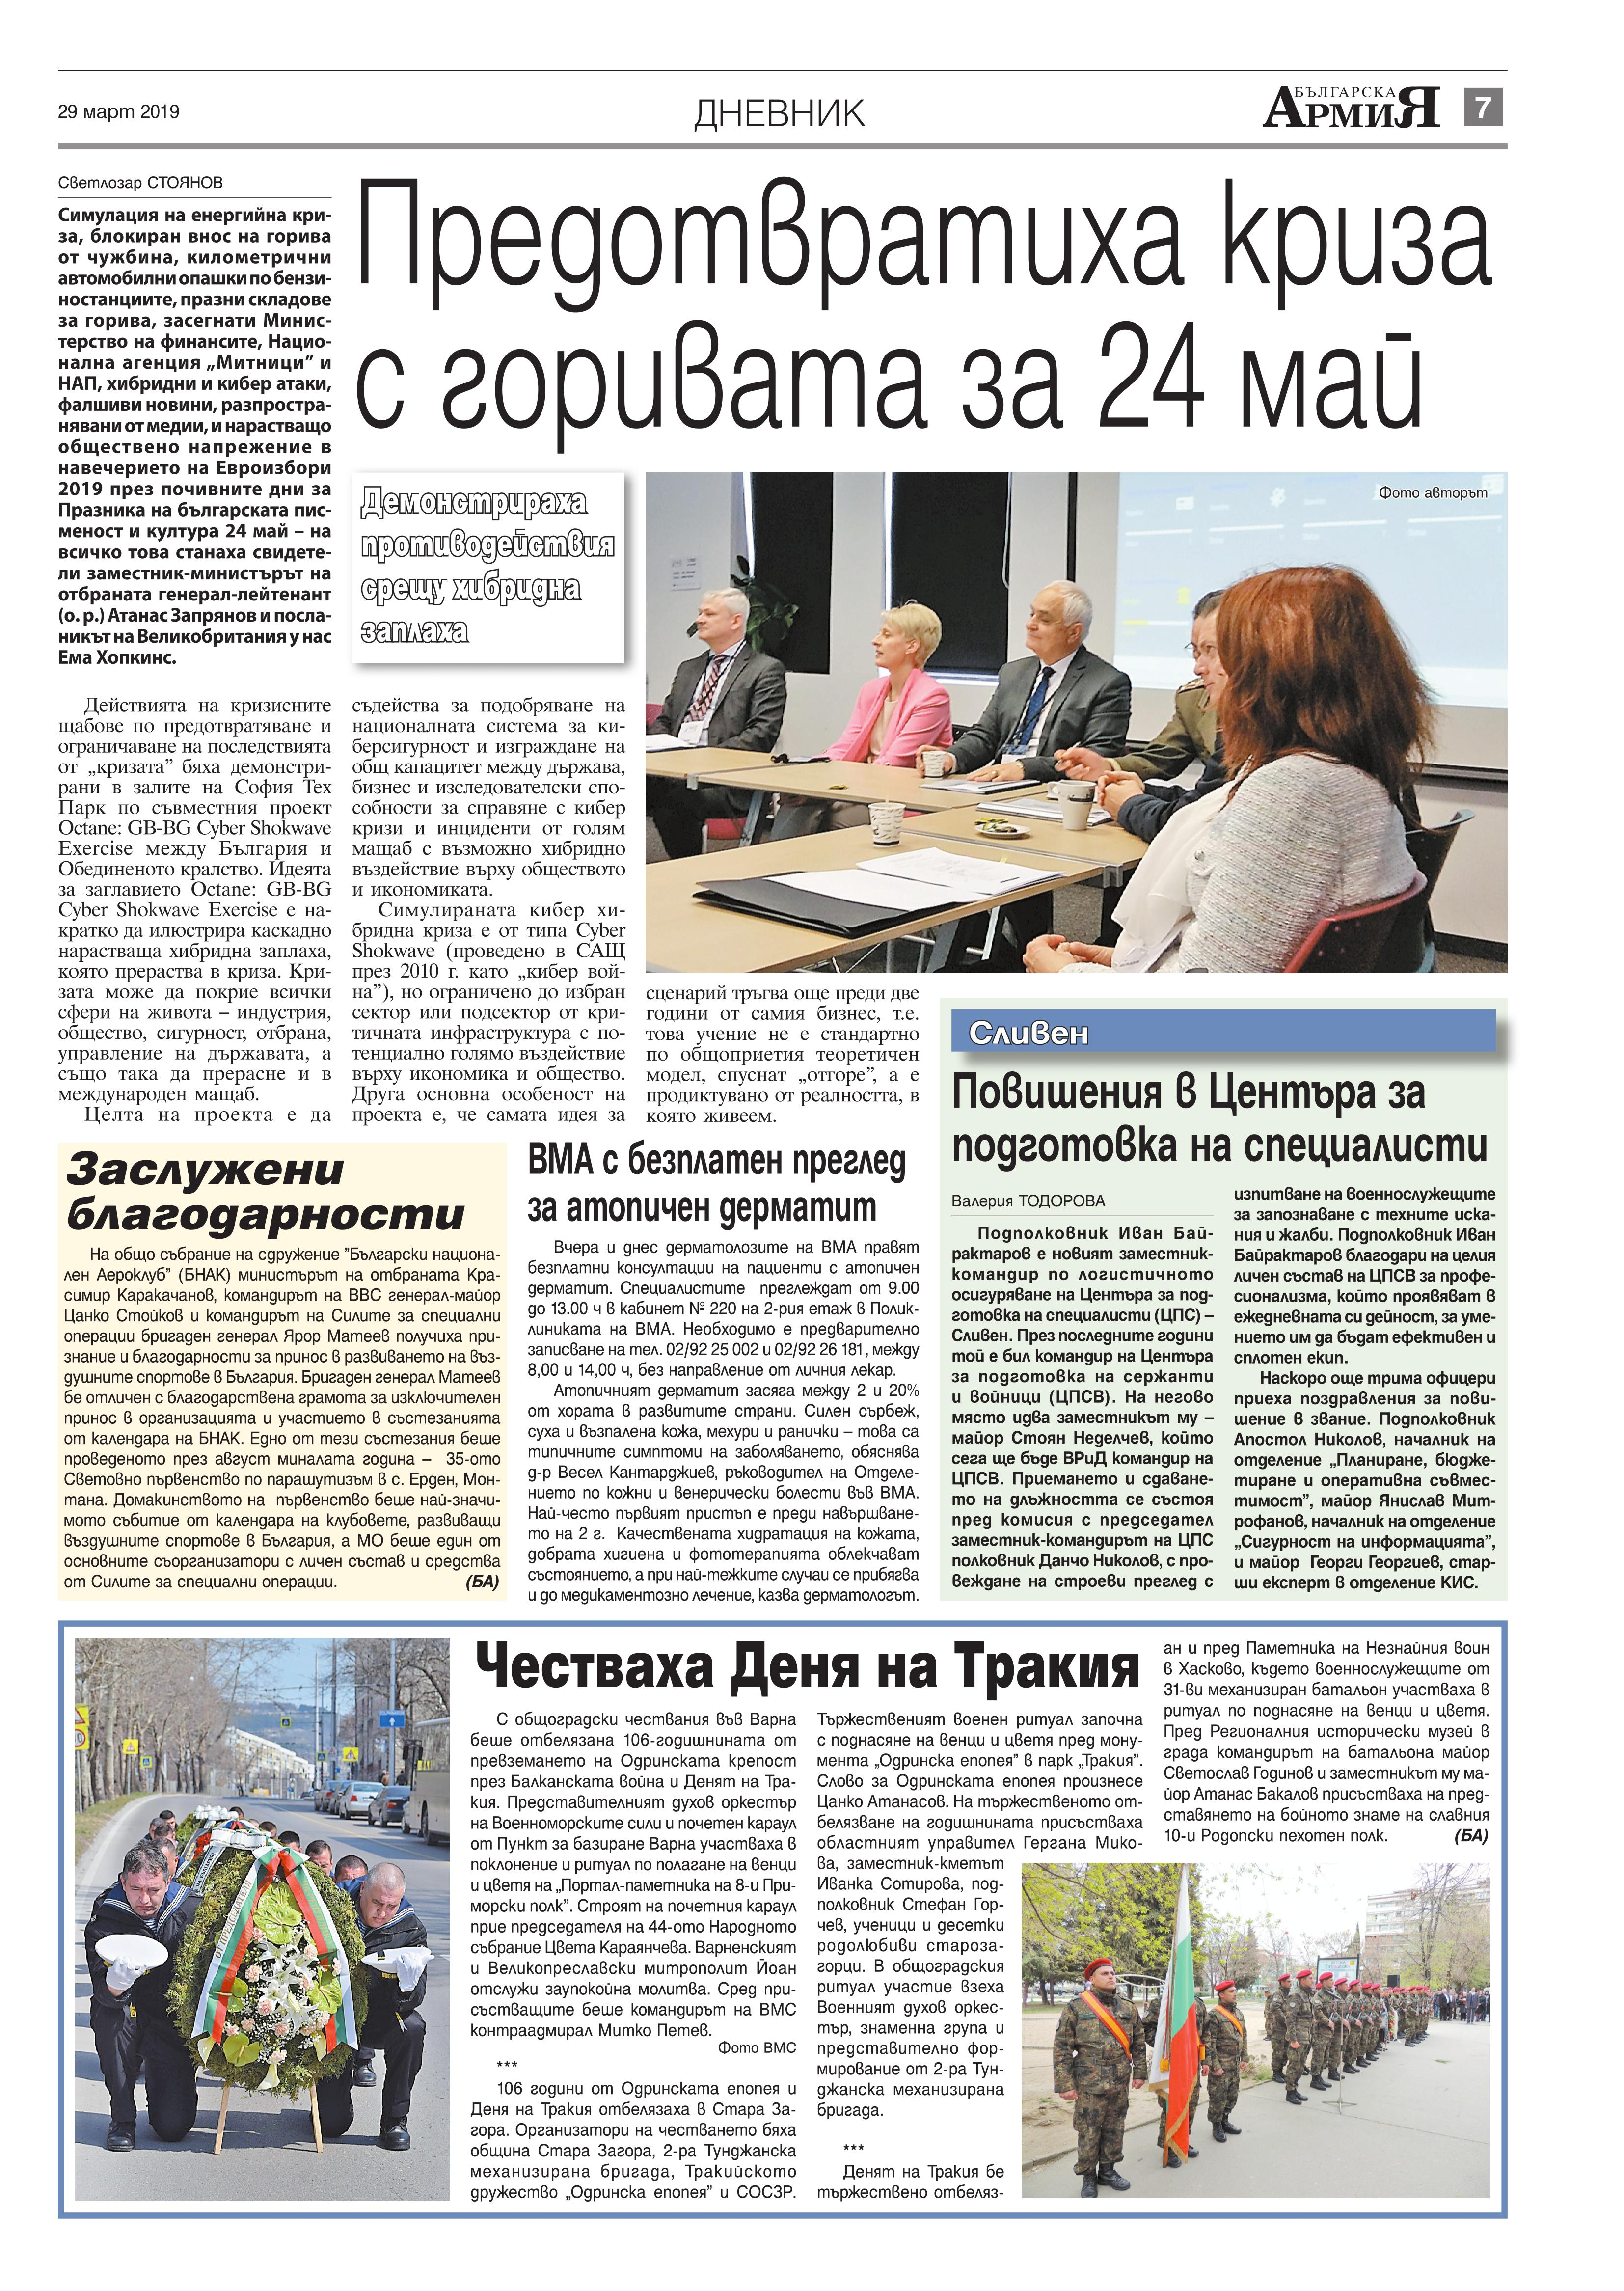 https://armymedia.bg/wp-content/uploads/2015/06/07.page1_-86.jpg